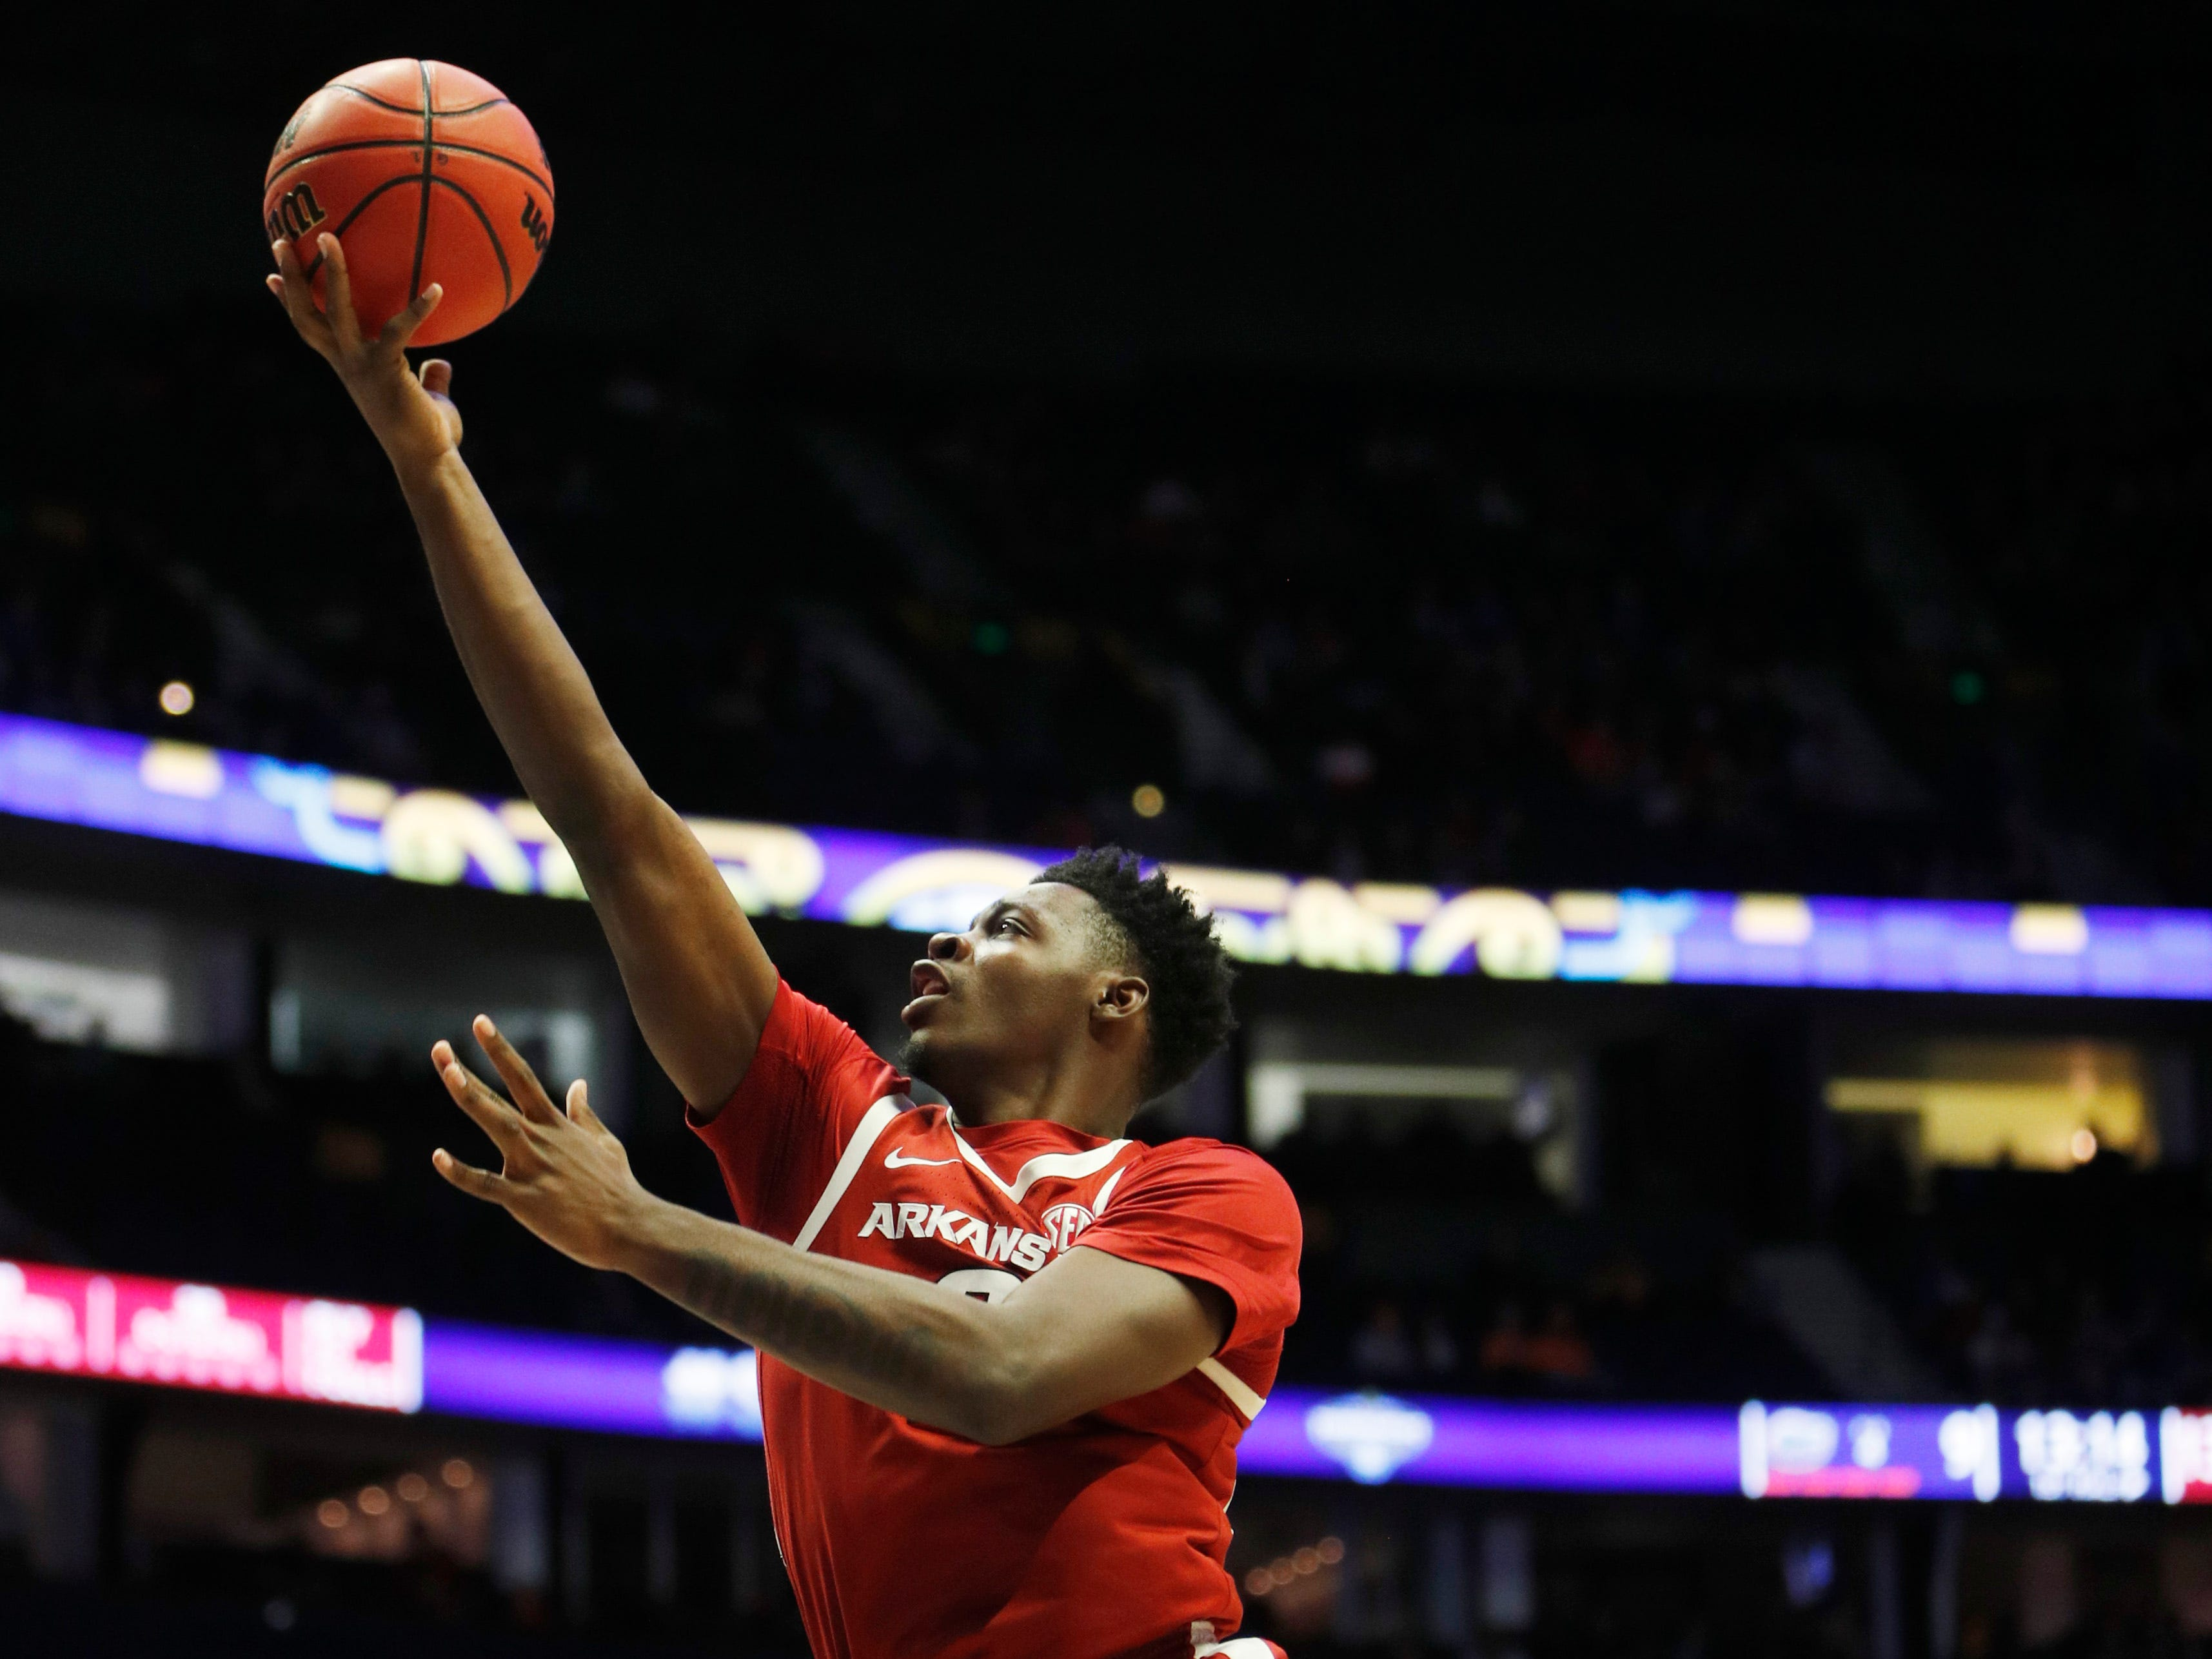 Arkansas forward Adrio Bailey (2) goes to the basket during the first half of the SEC Men's Basketball Tournament game at Bridgestone Arena in Nashville, Tenn., Thursday, March 14, 2019.